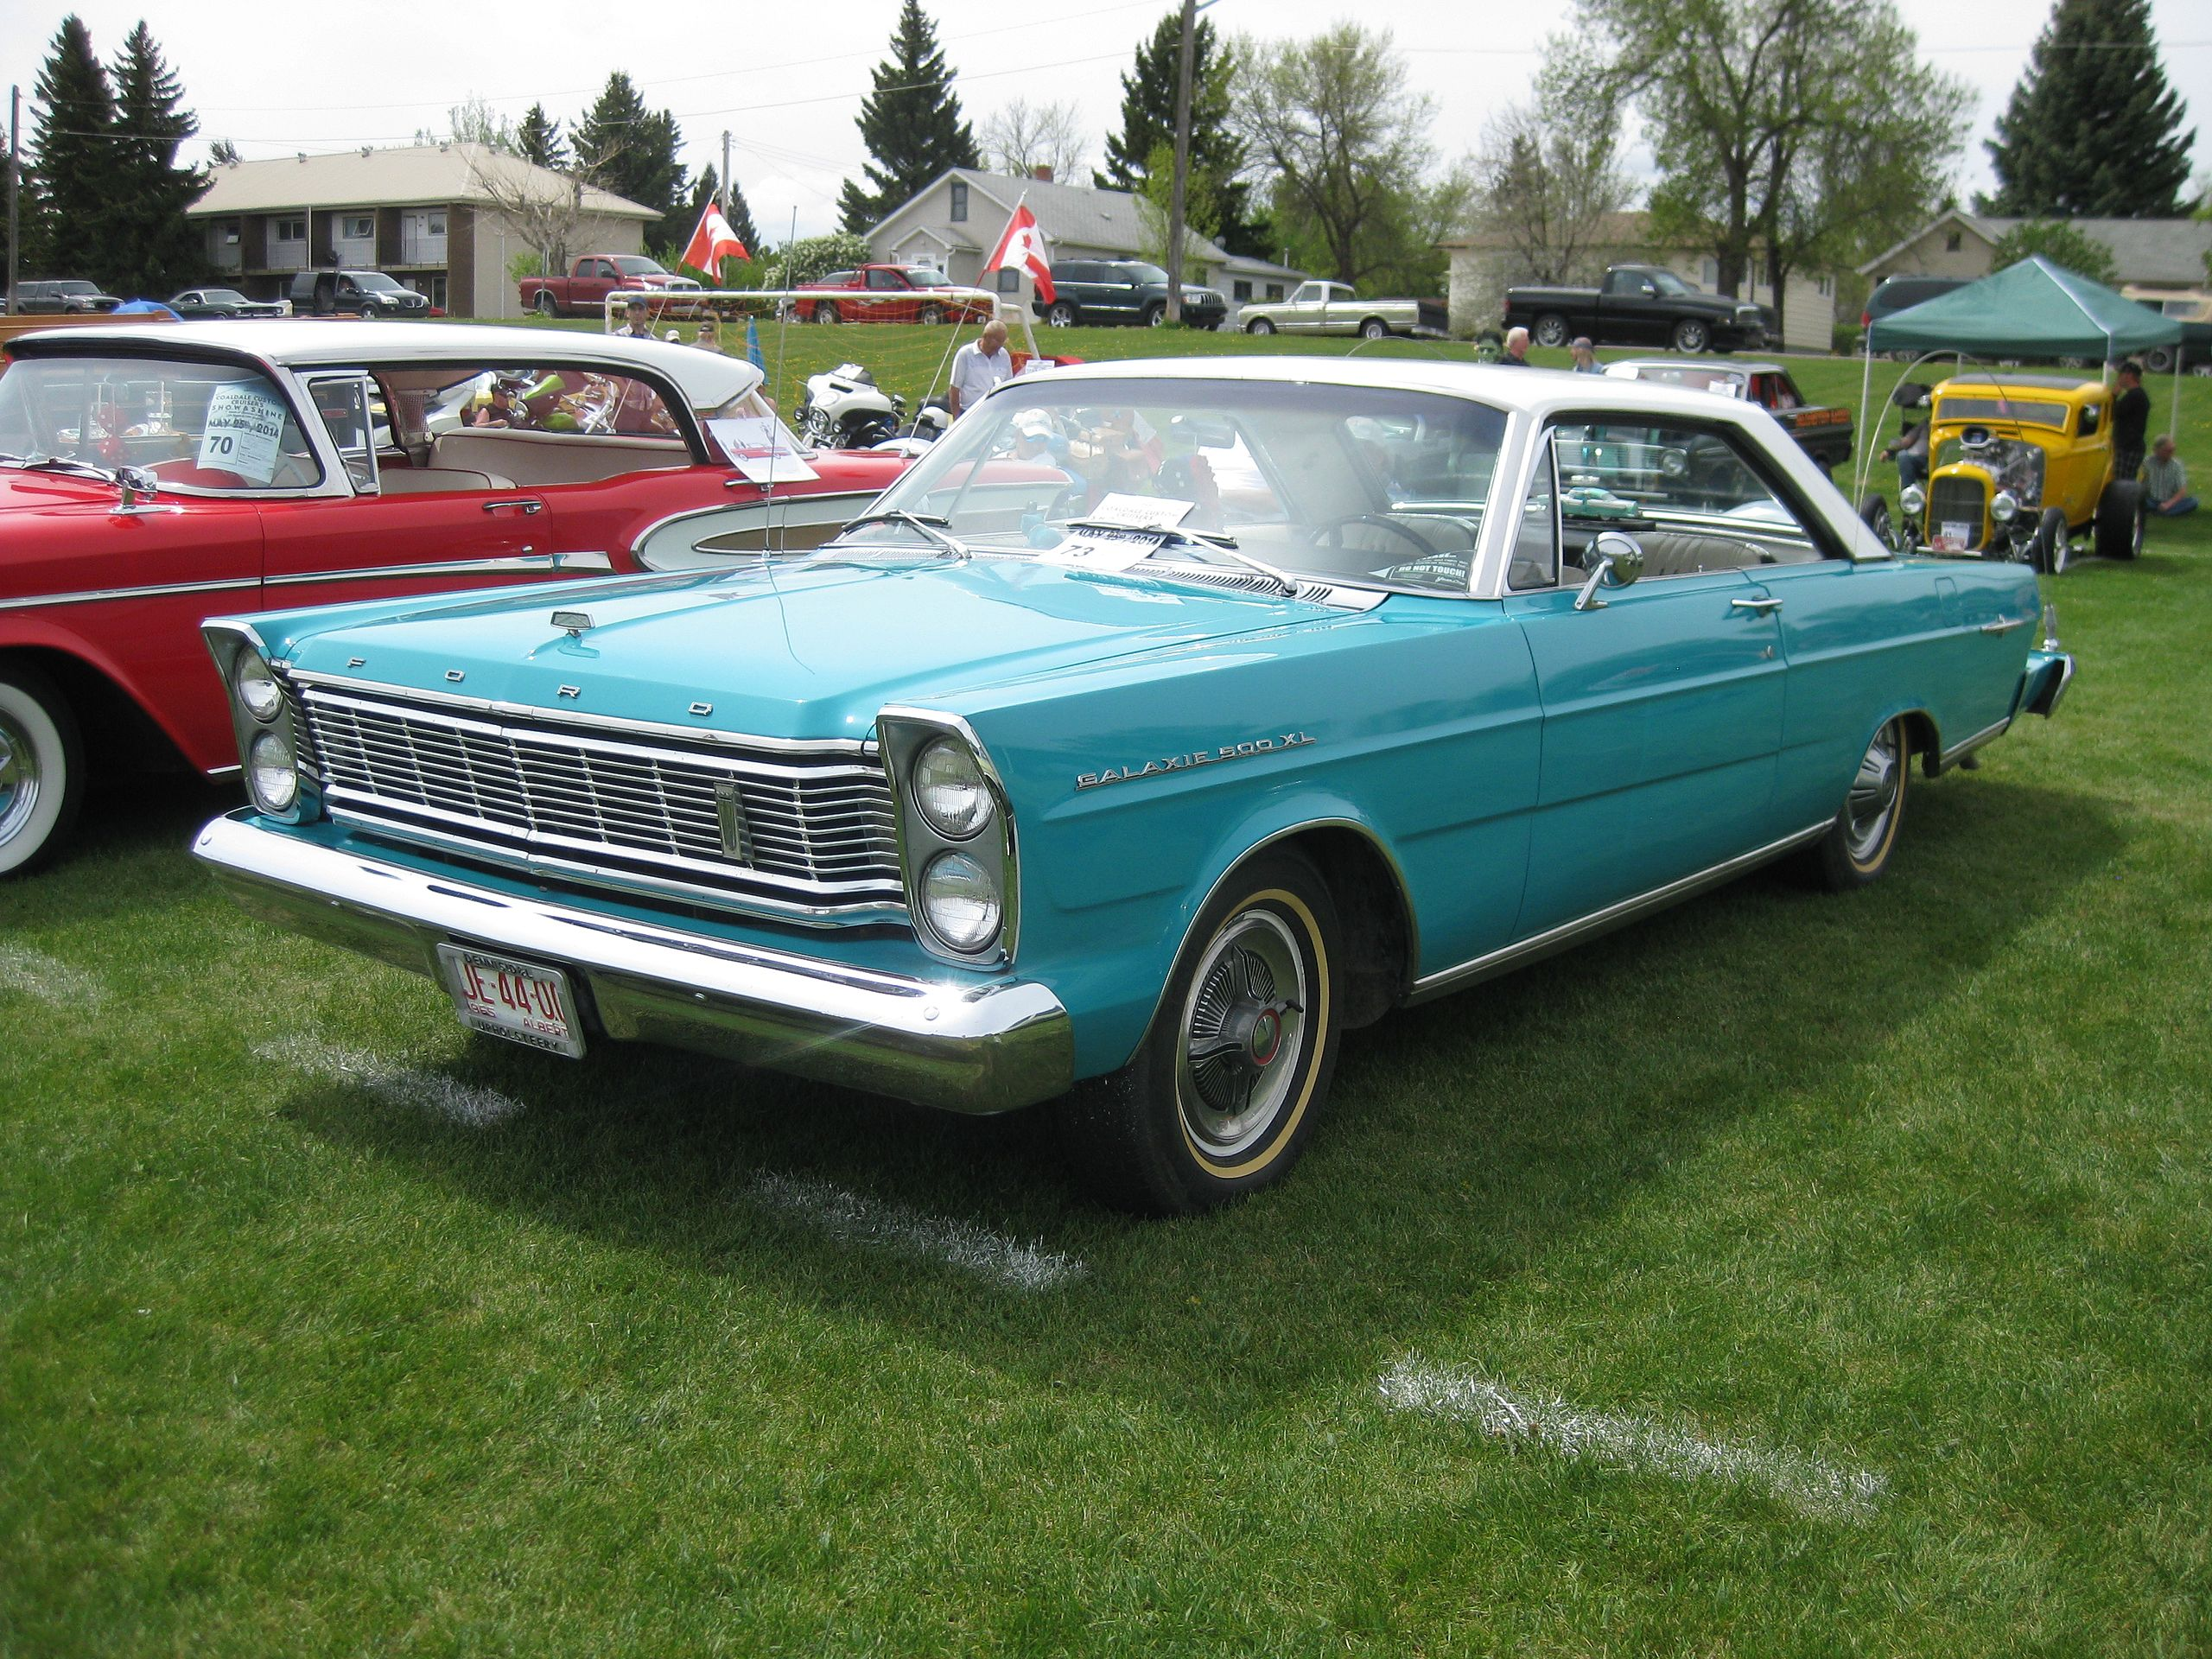 Ford Galaxie XL Convertible 1965